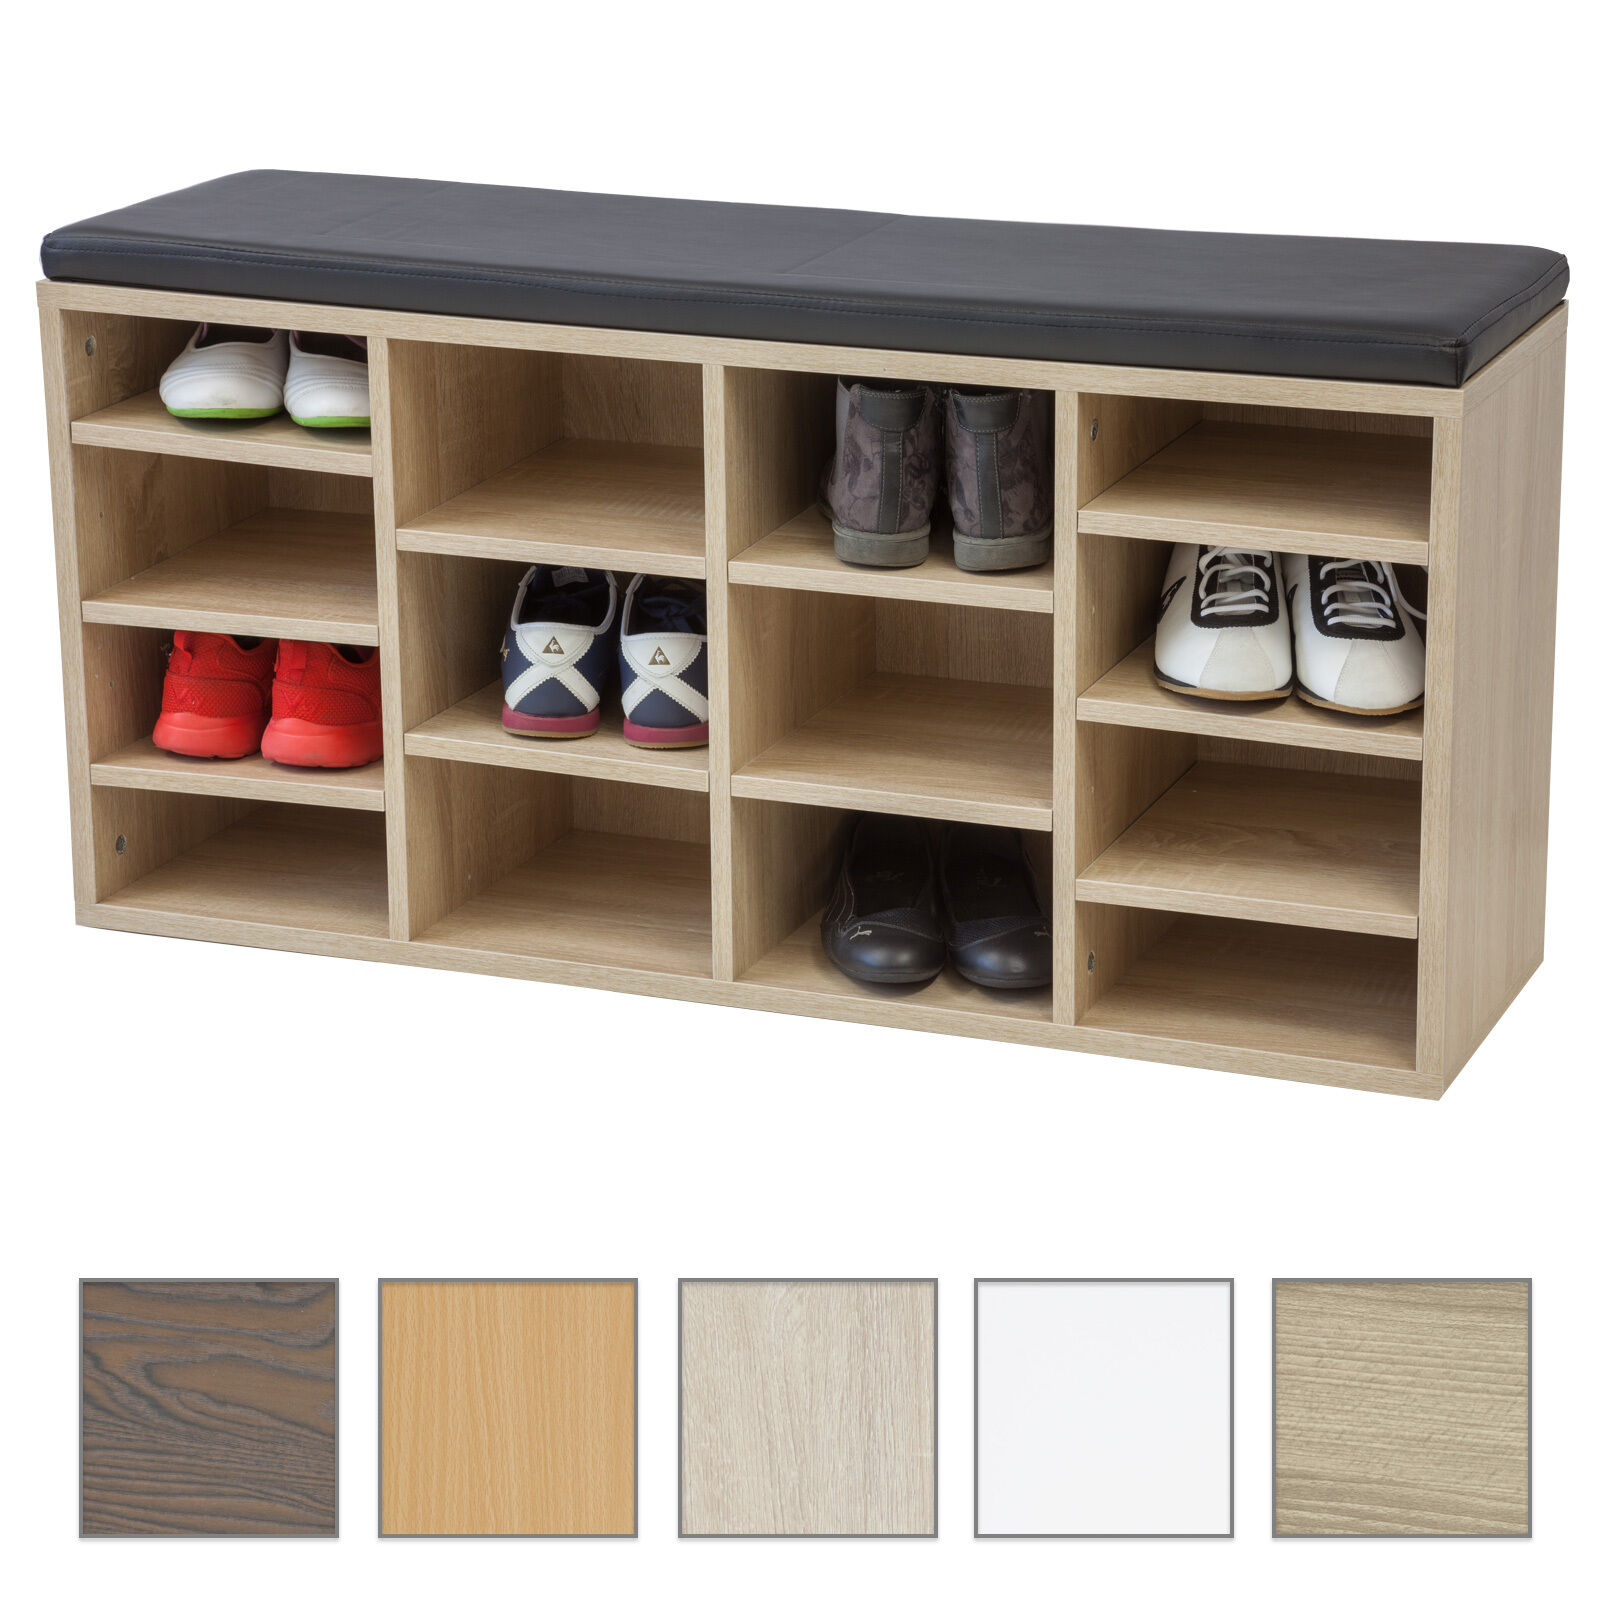 schuhschrank vincent mit sitzkissen farbe w hlbar kommode schuhregal sitzbank eur 49 99. Black Bedroom Furniture Sets. Home Design Ideas